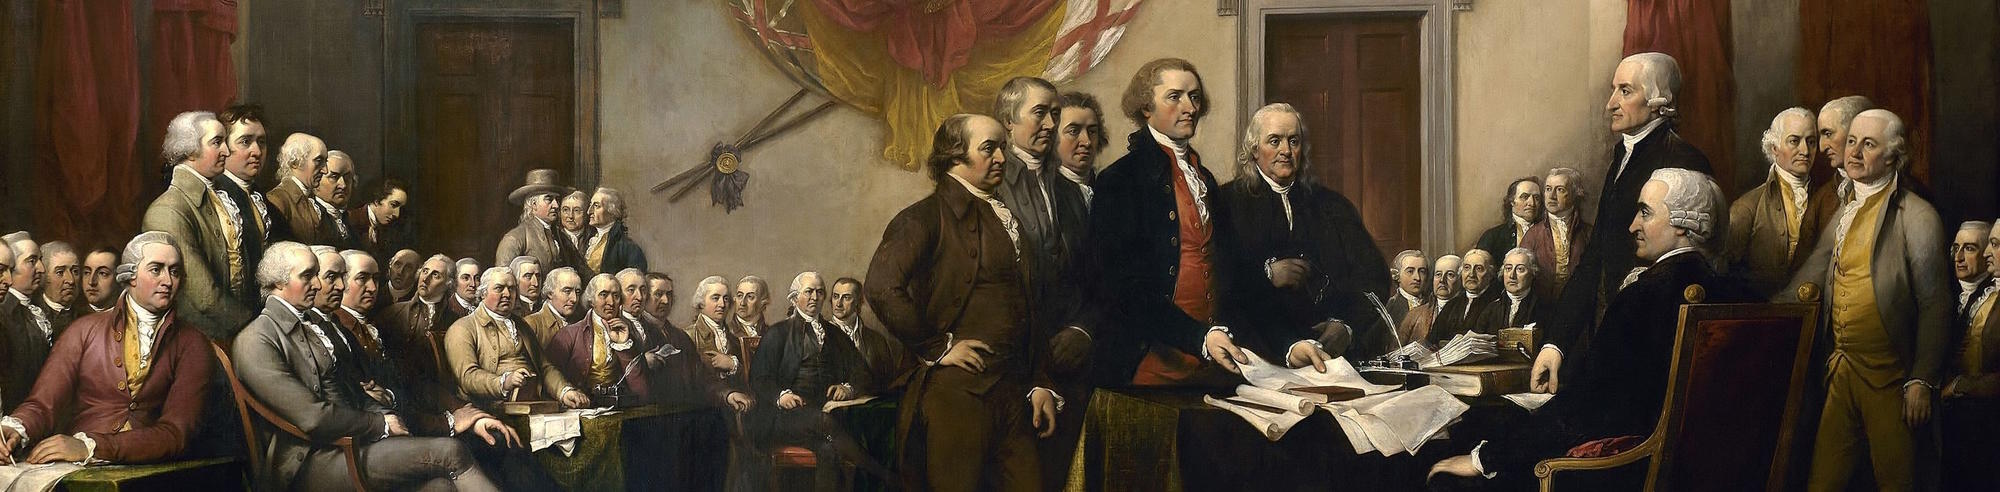 John Trumbull, Declaration of Independence